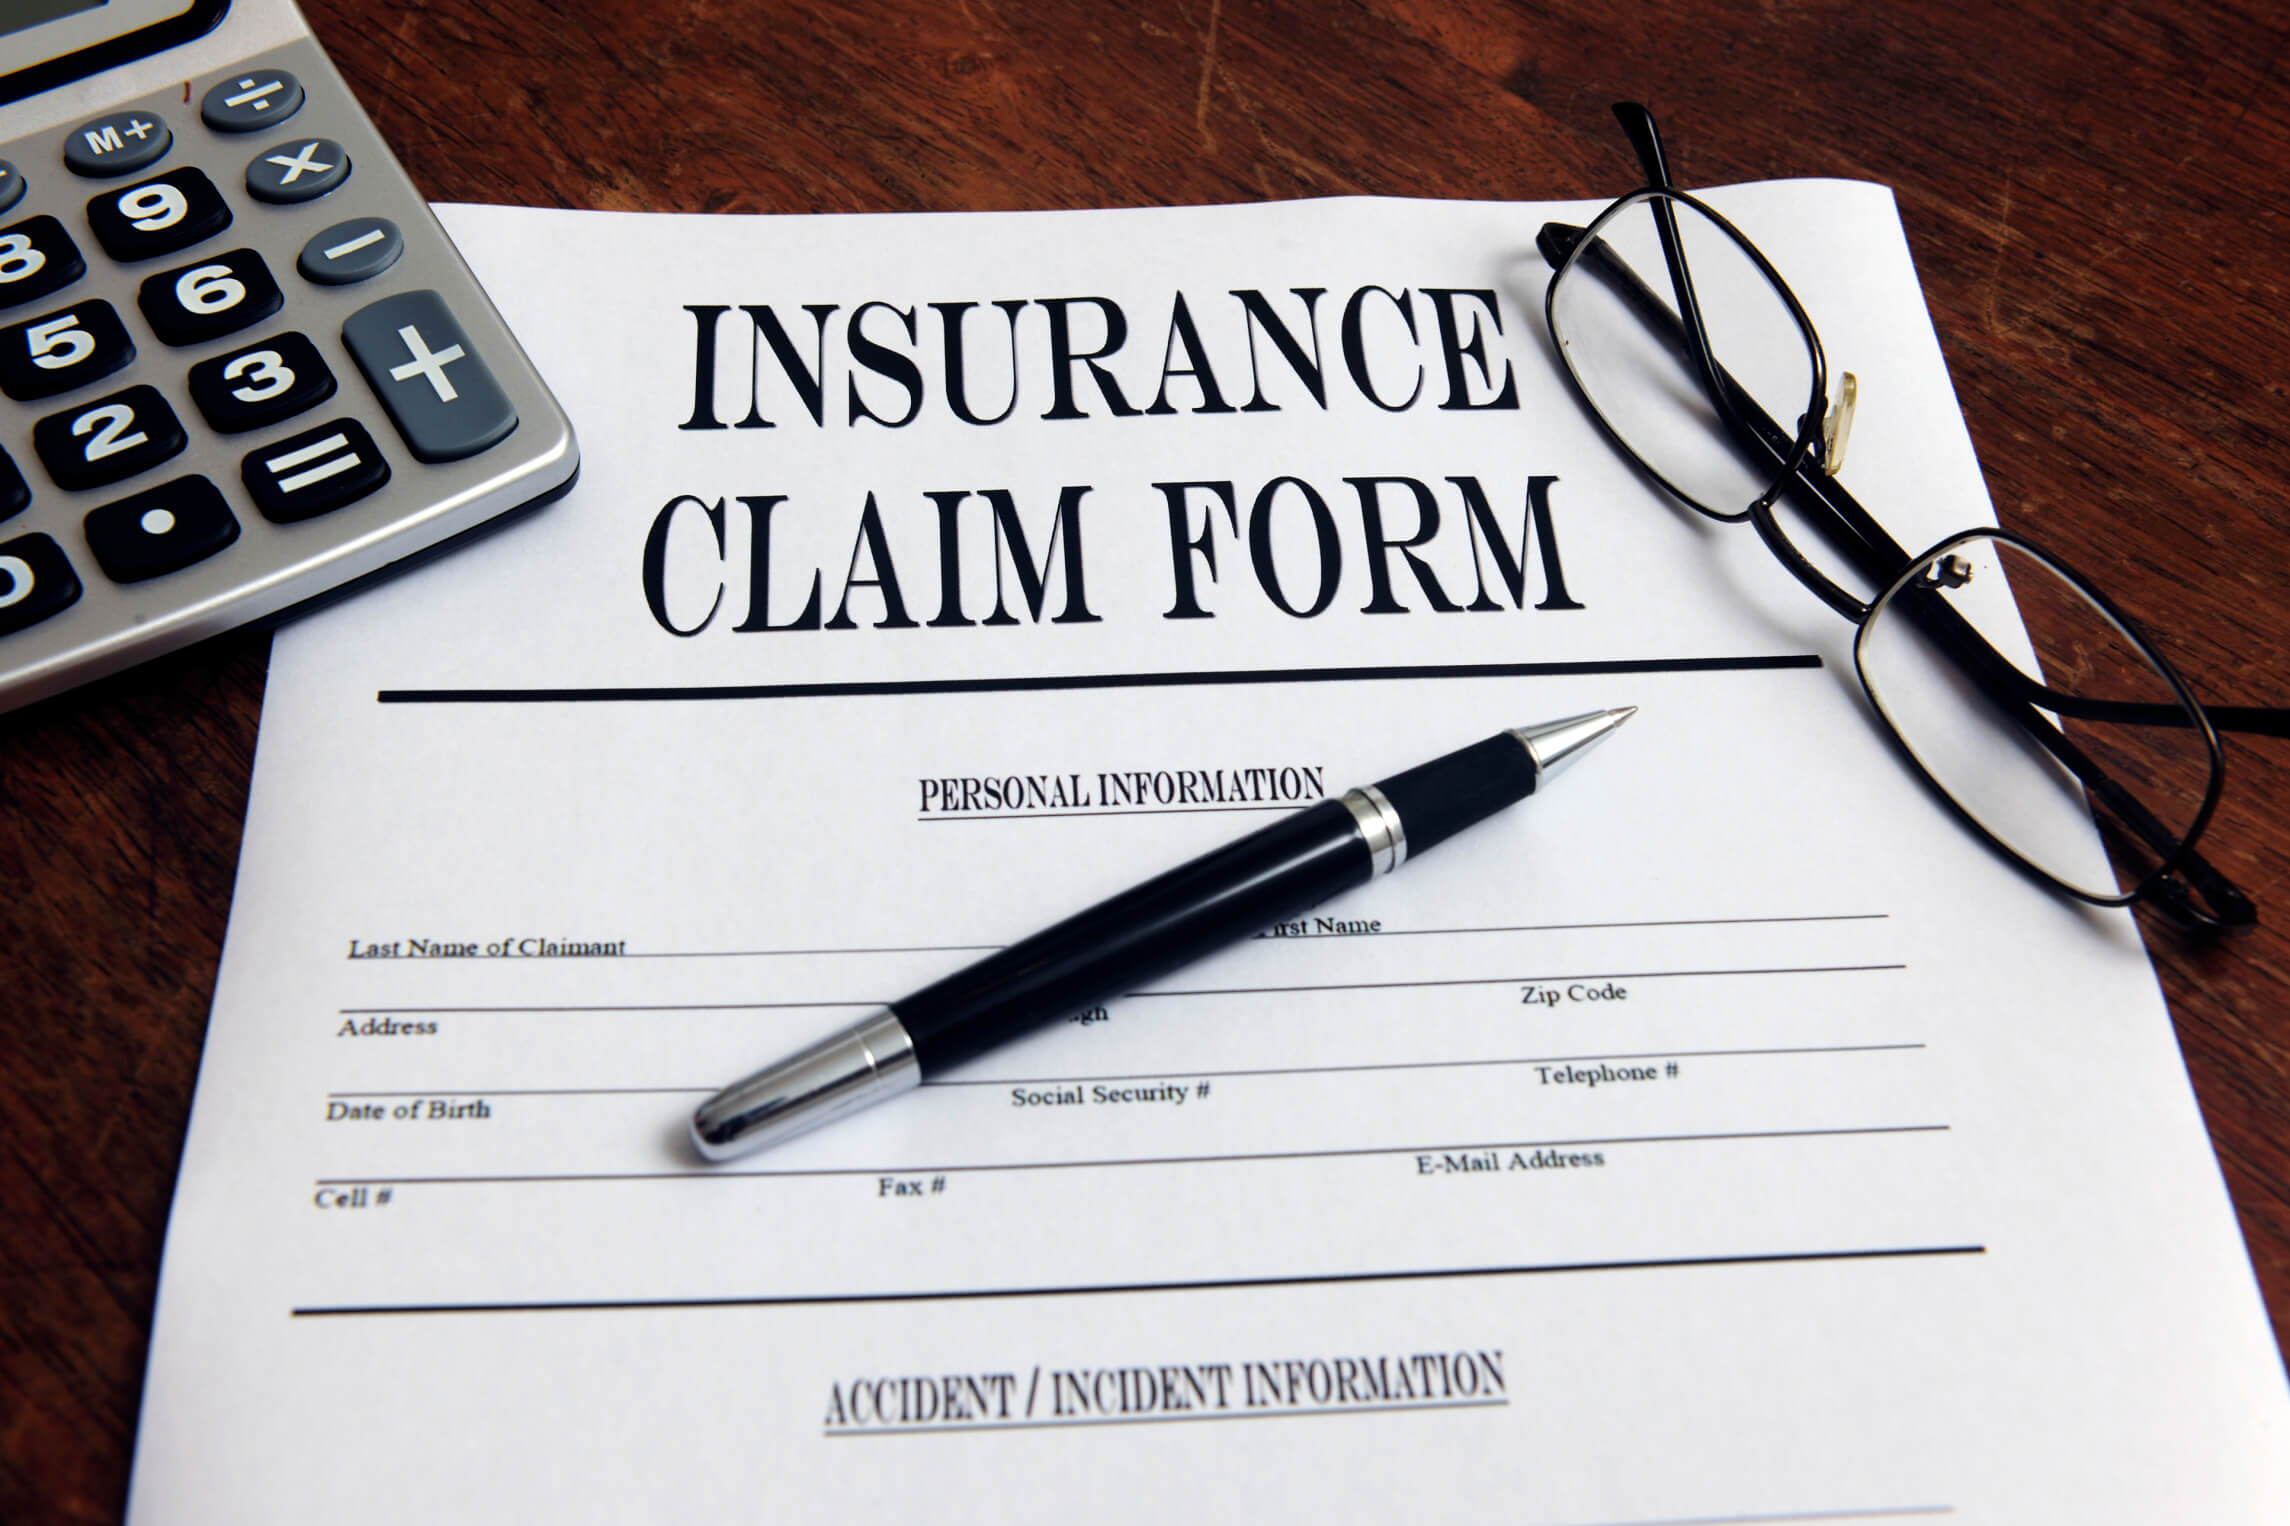 How Much Time Does An Insurance Company Have To Pay An Insurance Claim In Texas?